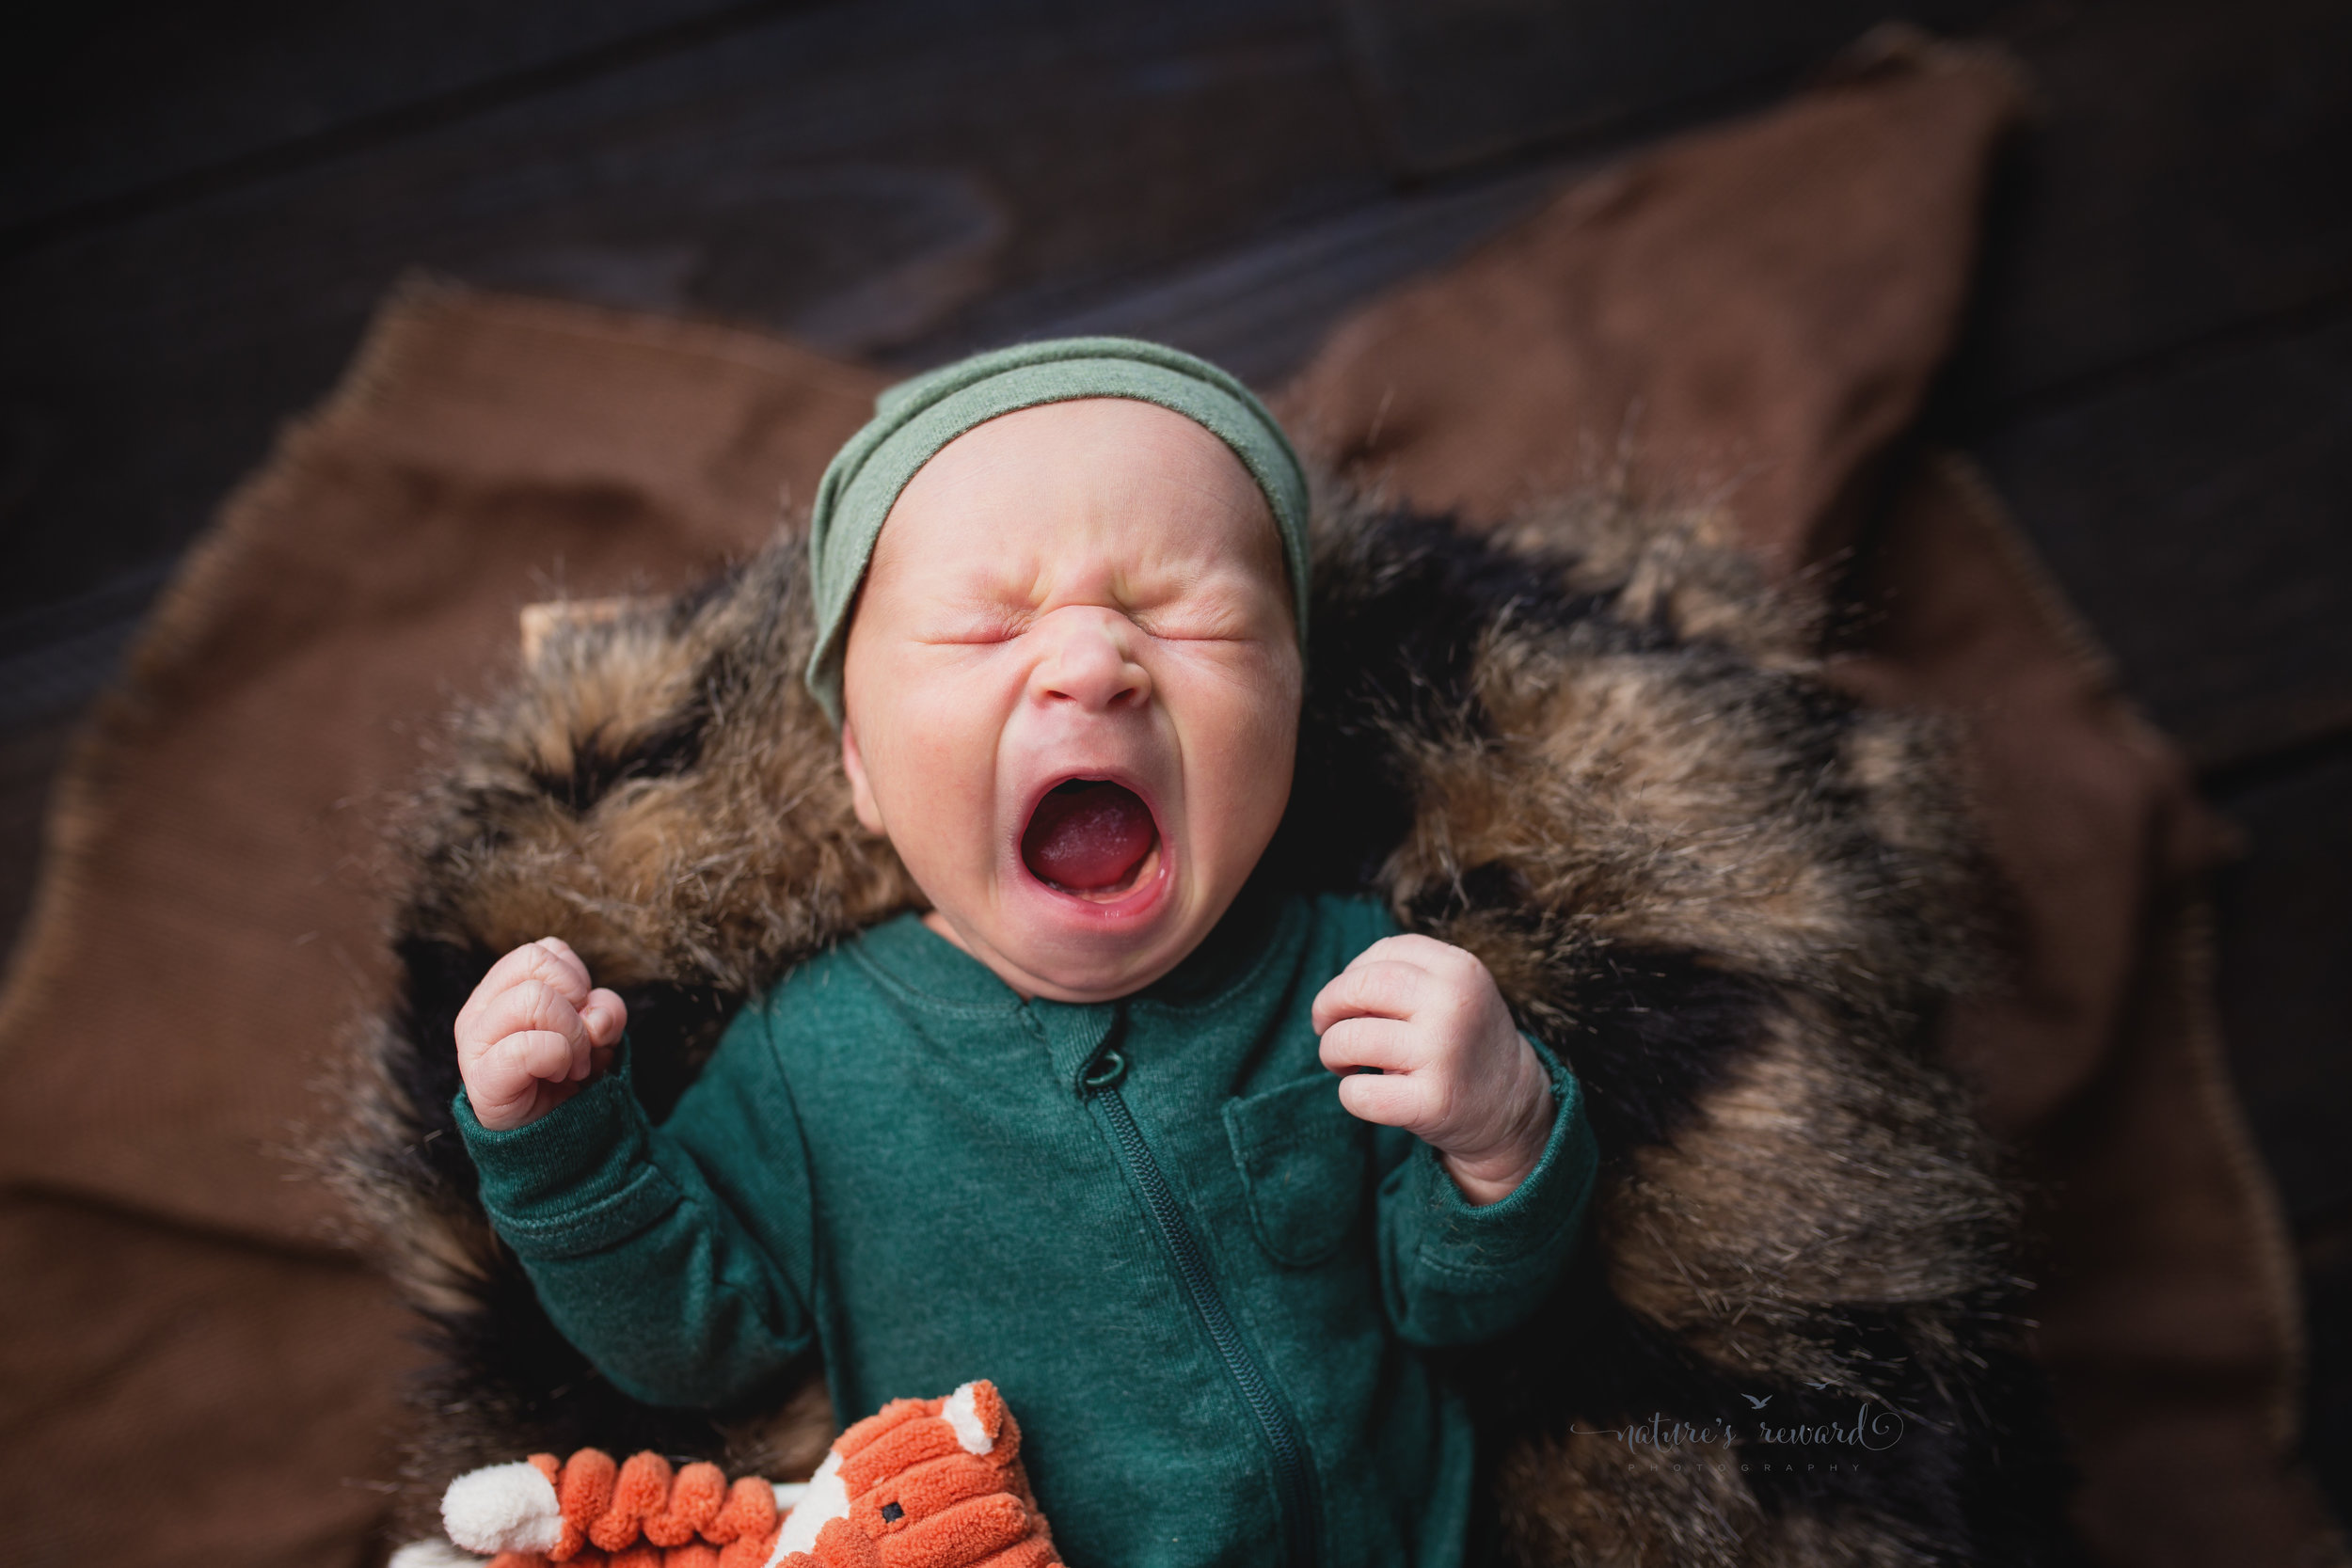 And then he yawned. A great big yawn. And he brought a smile to your heart with that yawn